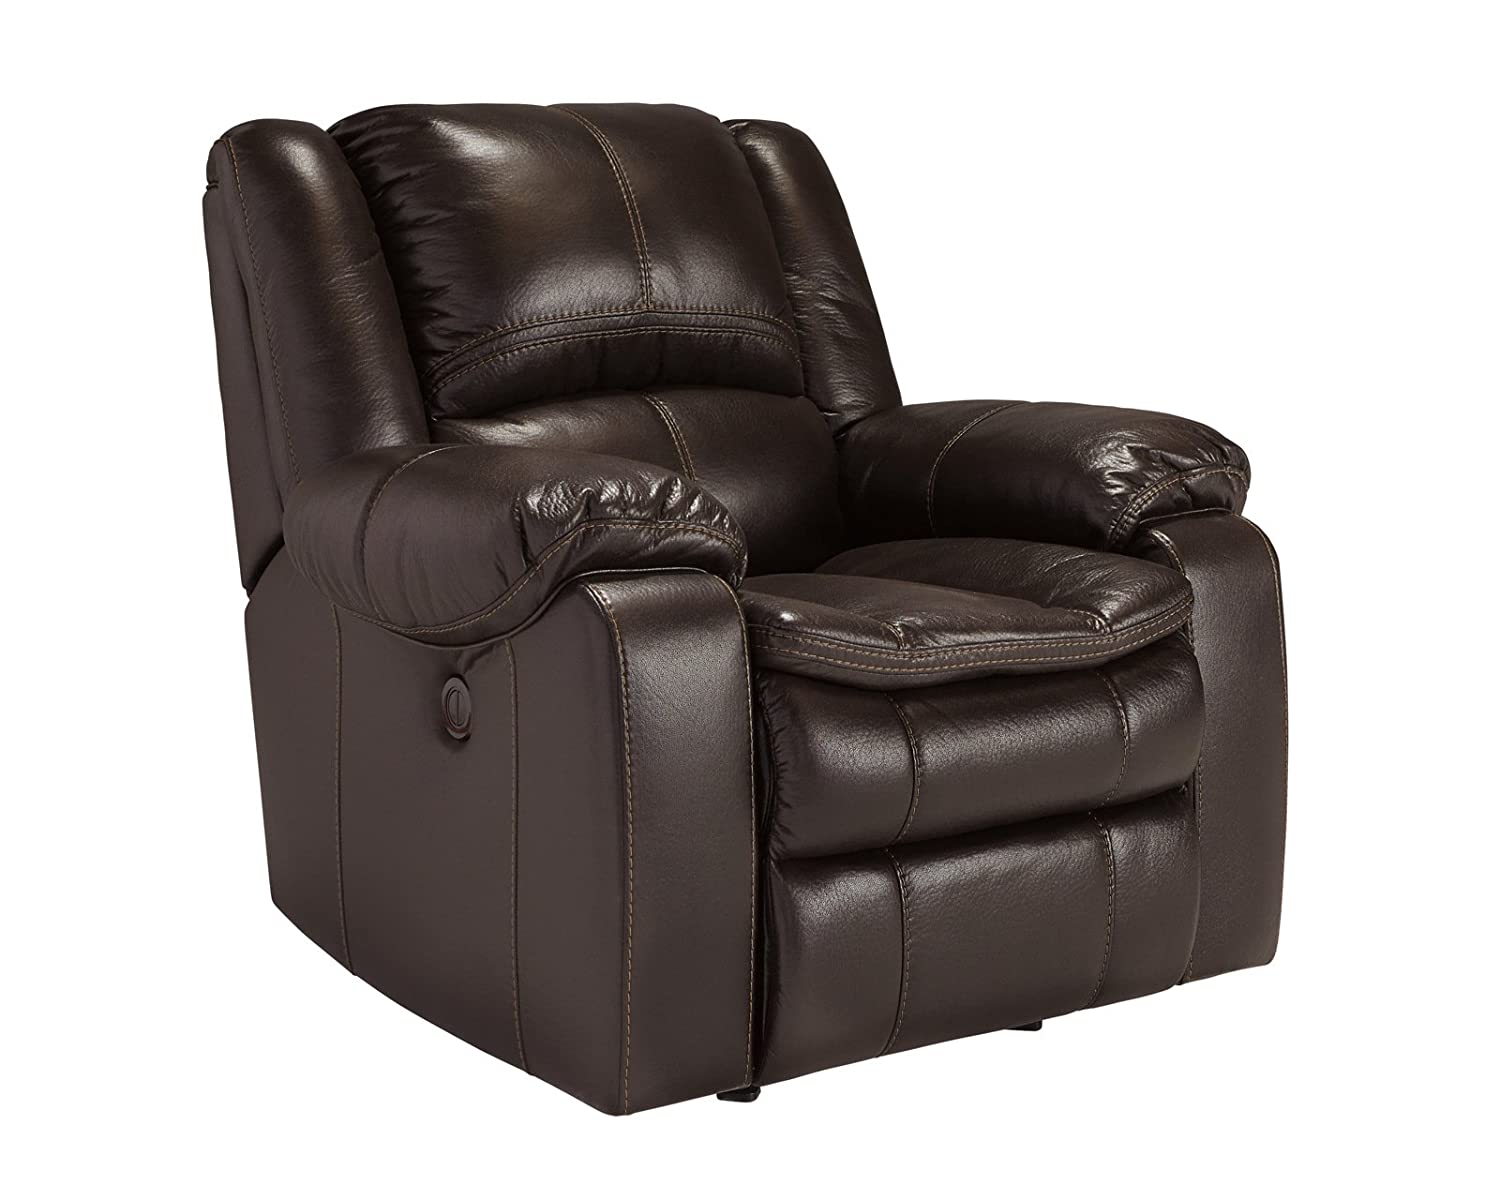 Amazon.com Signature Design by Ashley 8890598 Long Knight Collection Power Recliner Brown Kitchen u0026 Dining  sc 1 st  Amazon.com & Amazon.com: Signature Design by Ashley 8890598 Long Knight ... islam-shia.org